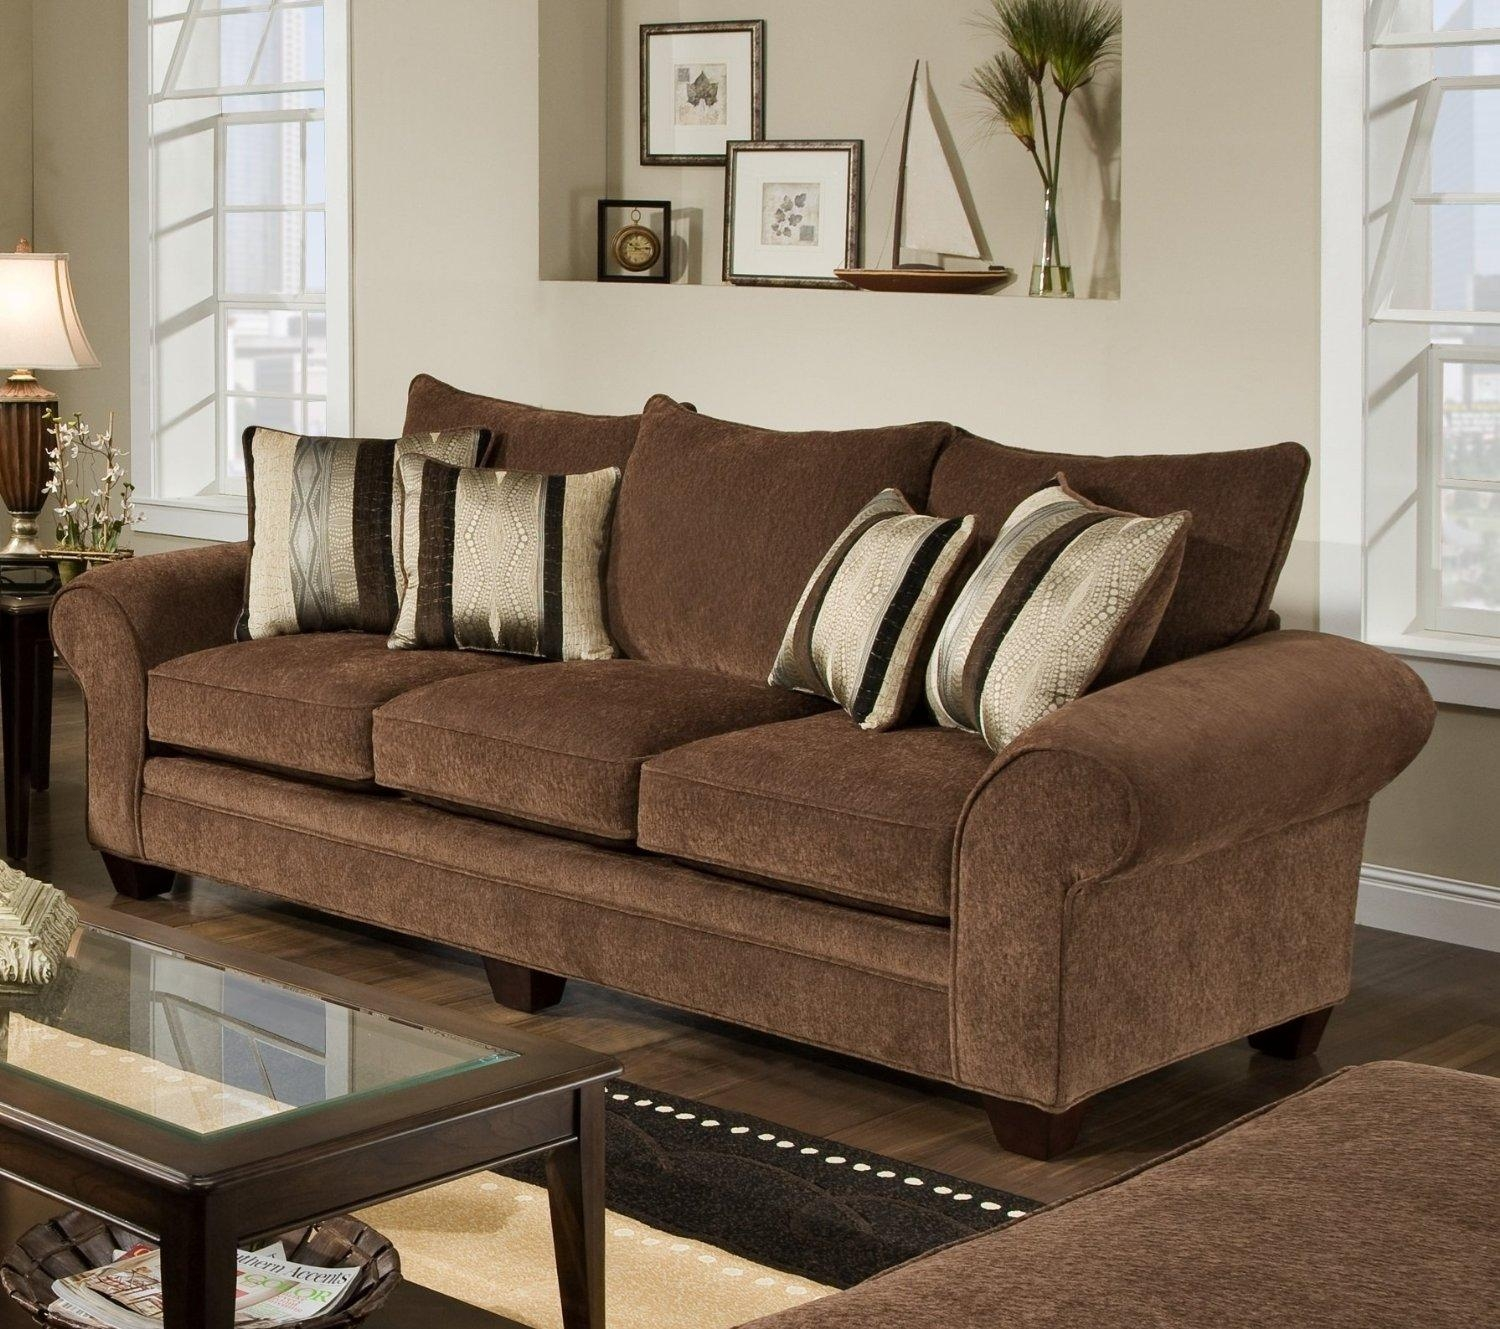 Furniture: Brown Benchcraft Furniture Sofa Decor With Glass And Intended For Benchcraft Leather Sofas (View 11 of 20)